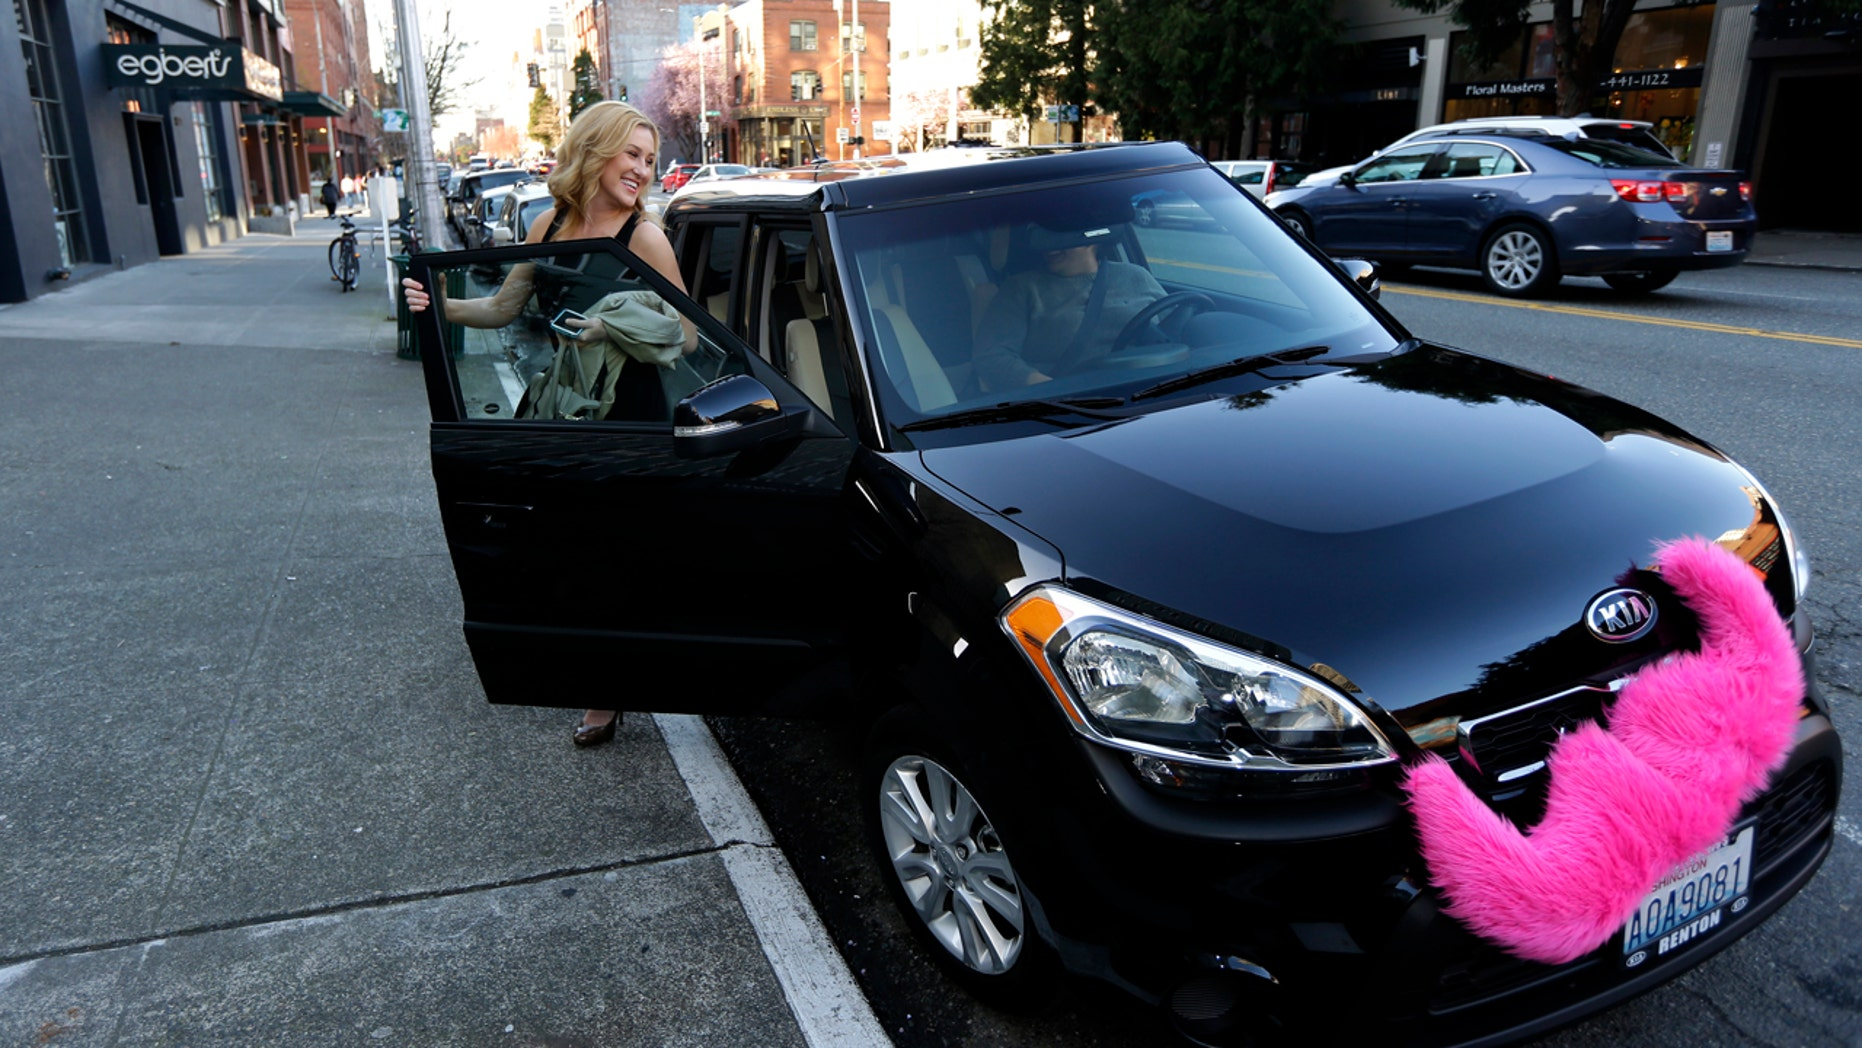 FILE - In this March 12, 2014 file photo, Katie Baranyuk gets out of a car driven by Dara Jenkins, a driver for the ride-sharing service Lyft, after getting a ride to downtown Seattle. Seattle may soon become the first city to let drivers of ride-hailing companies such as Uber and Lyft collectively bargain over pay and working conditions. (AP Photo/Ted S. Warren, File)